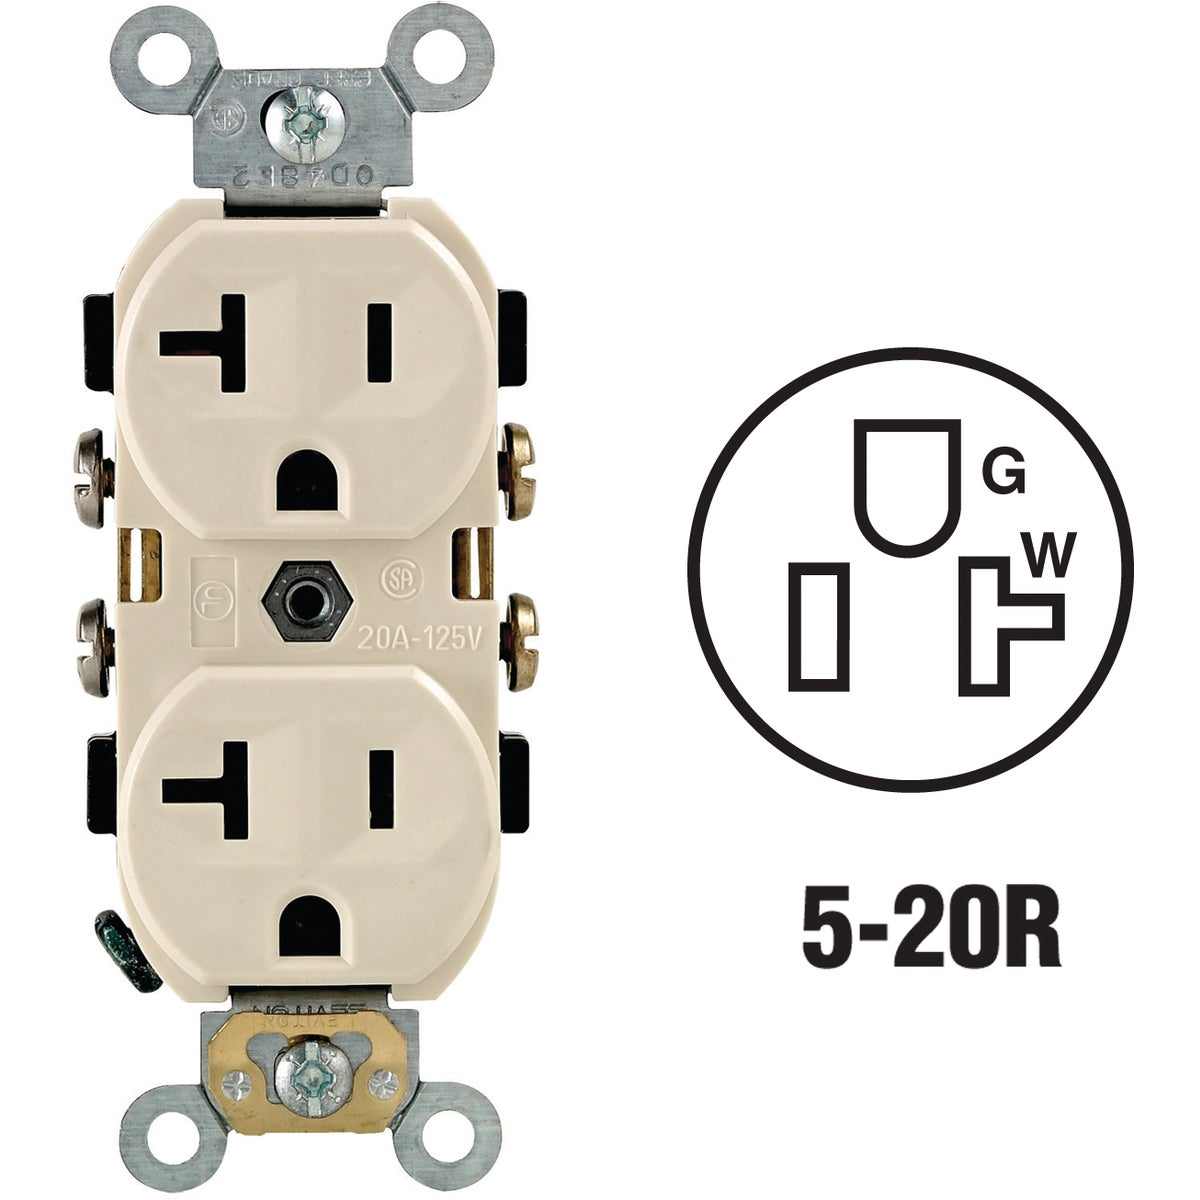 LT ALM DPLX OUTLET - S06-OCR20-0TS by Leviton Mfg Co